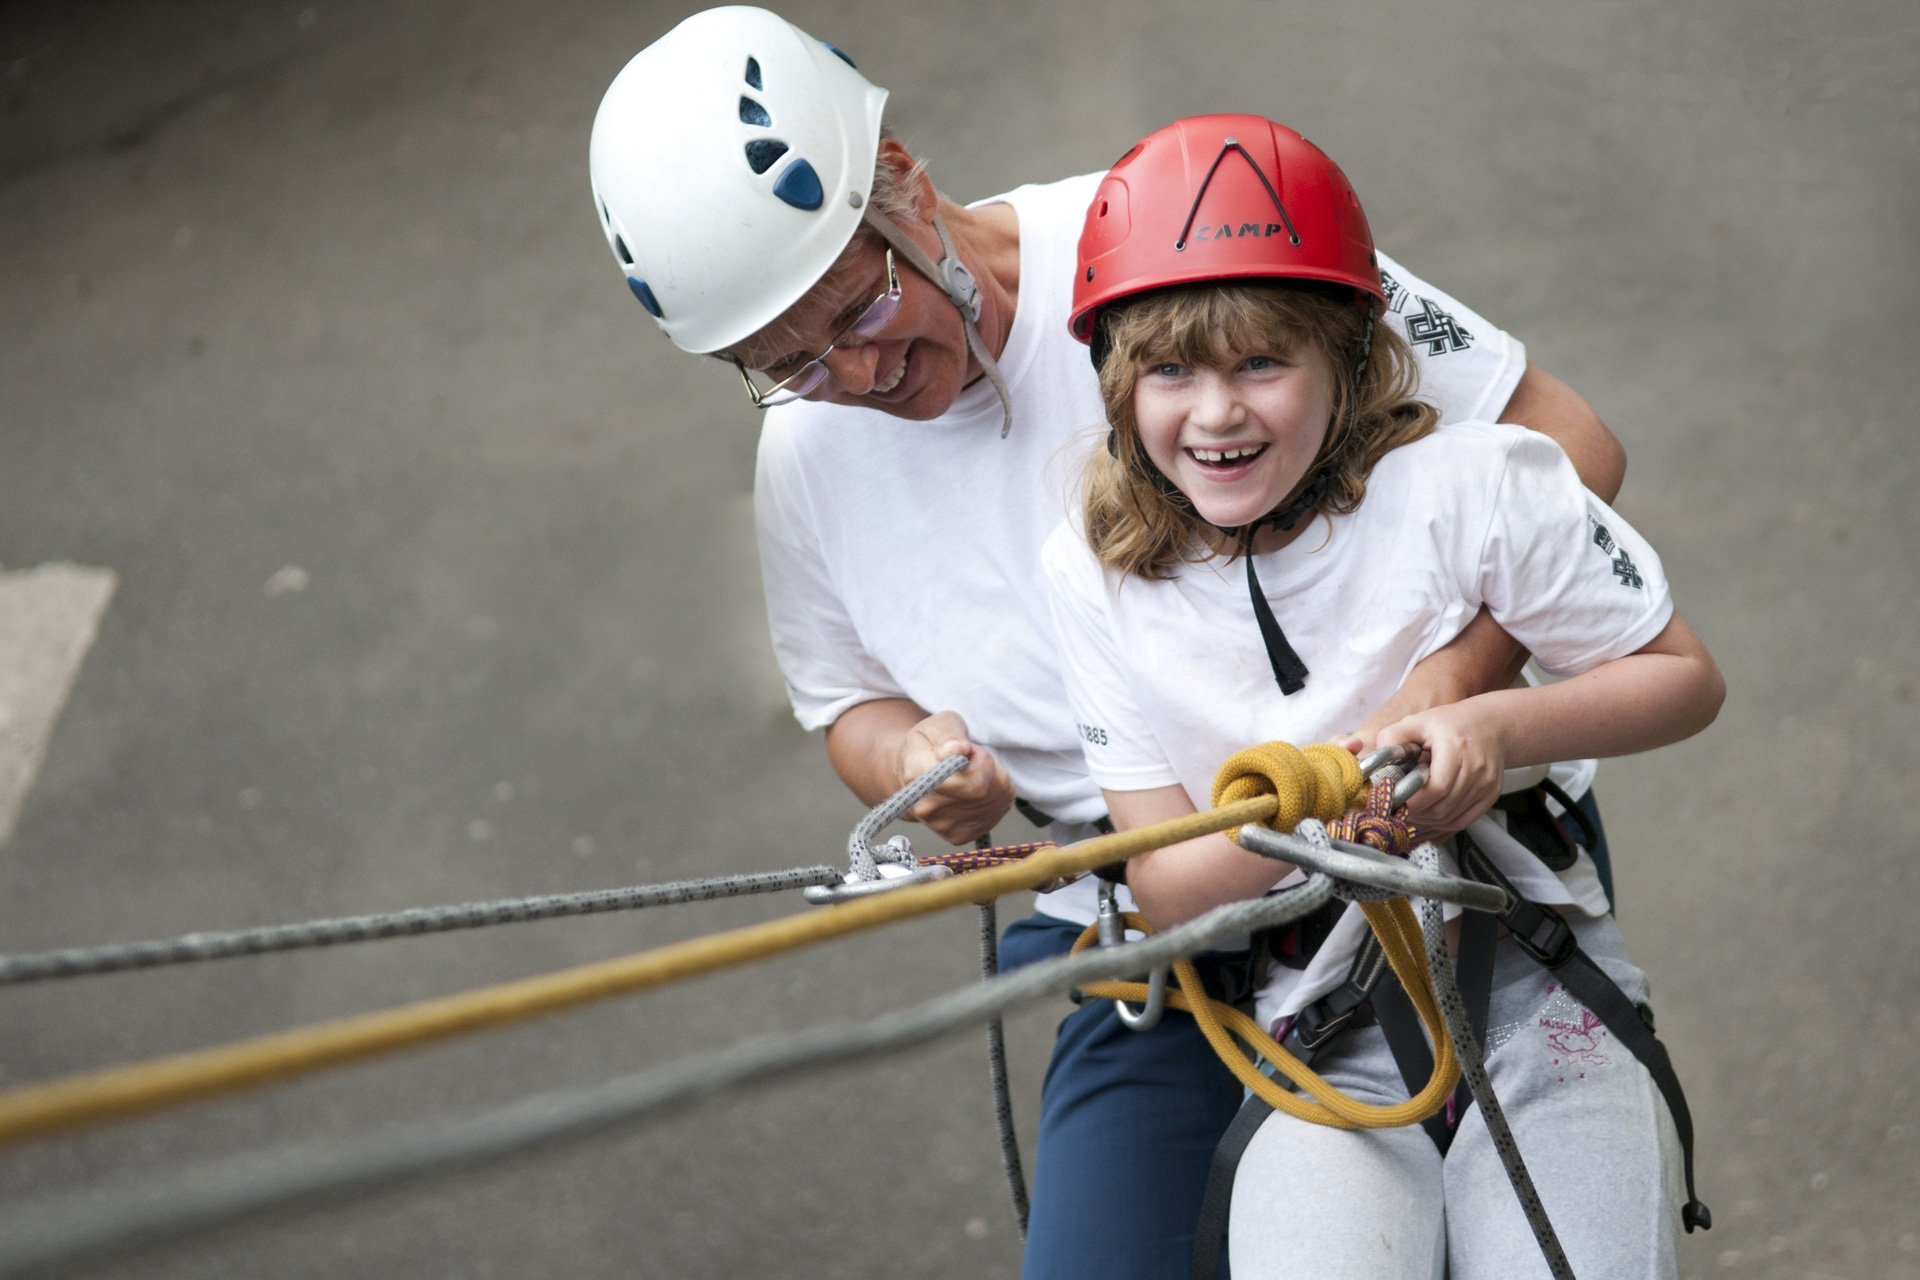 Girl and lady tandem abseiling down outdoor climbing wall at Calvert Trust Exmoor with safety ropes, harnesses and helmets